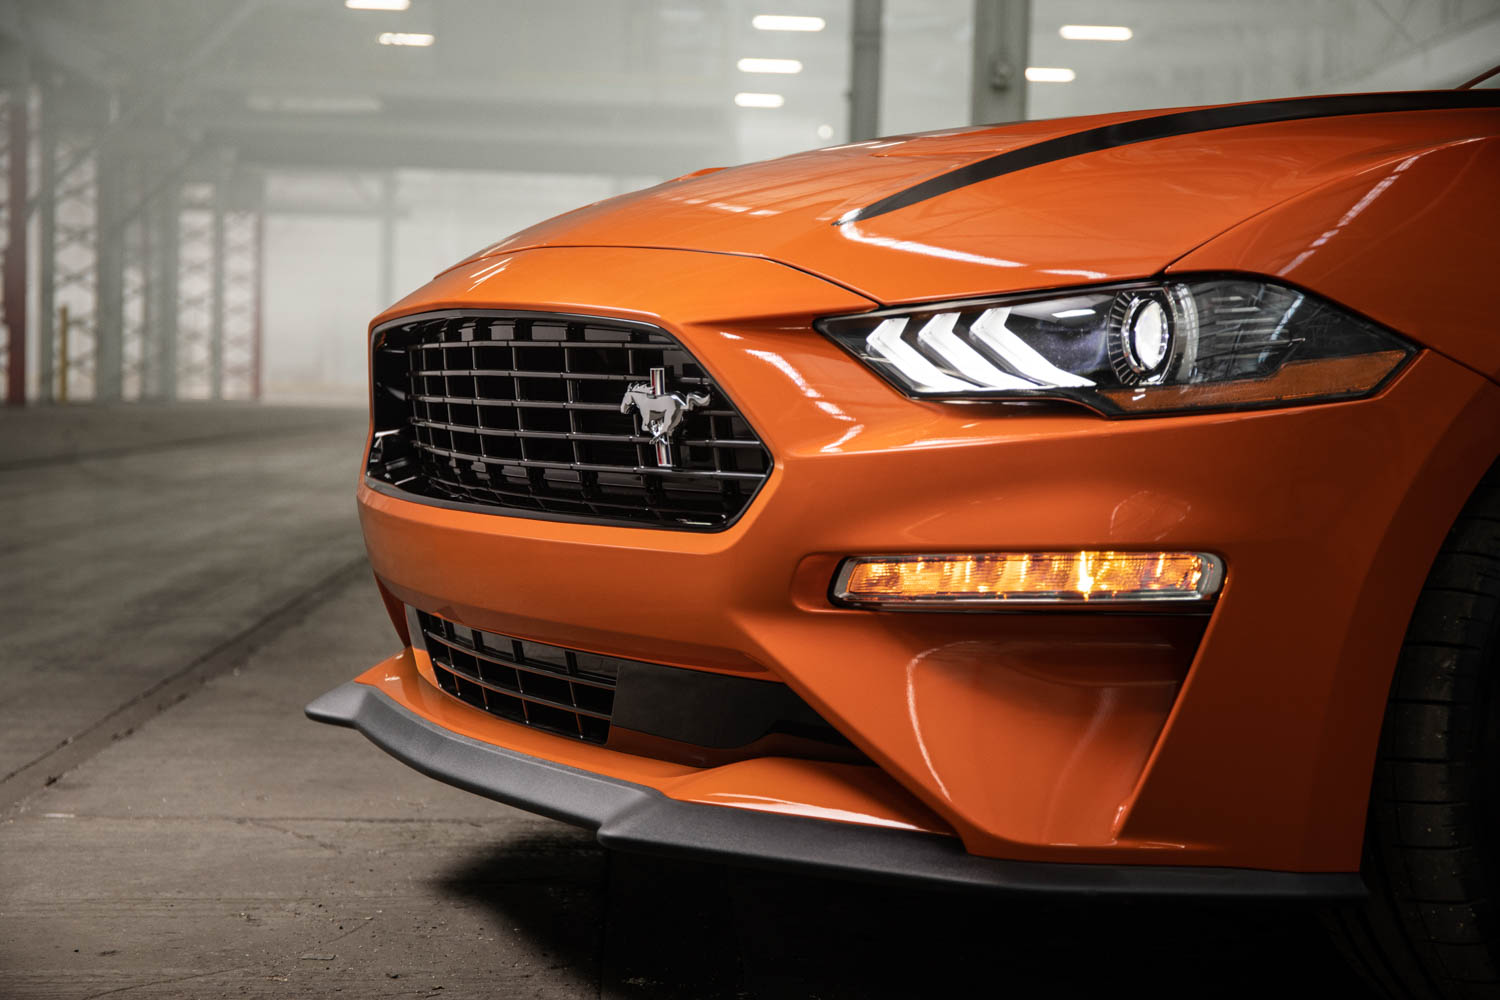 2020 Ford Mustang High Performance Package nose